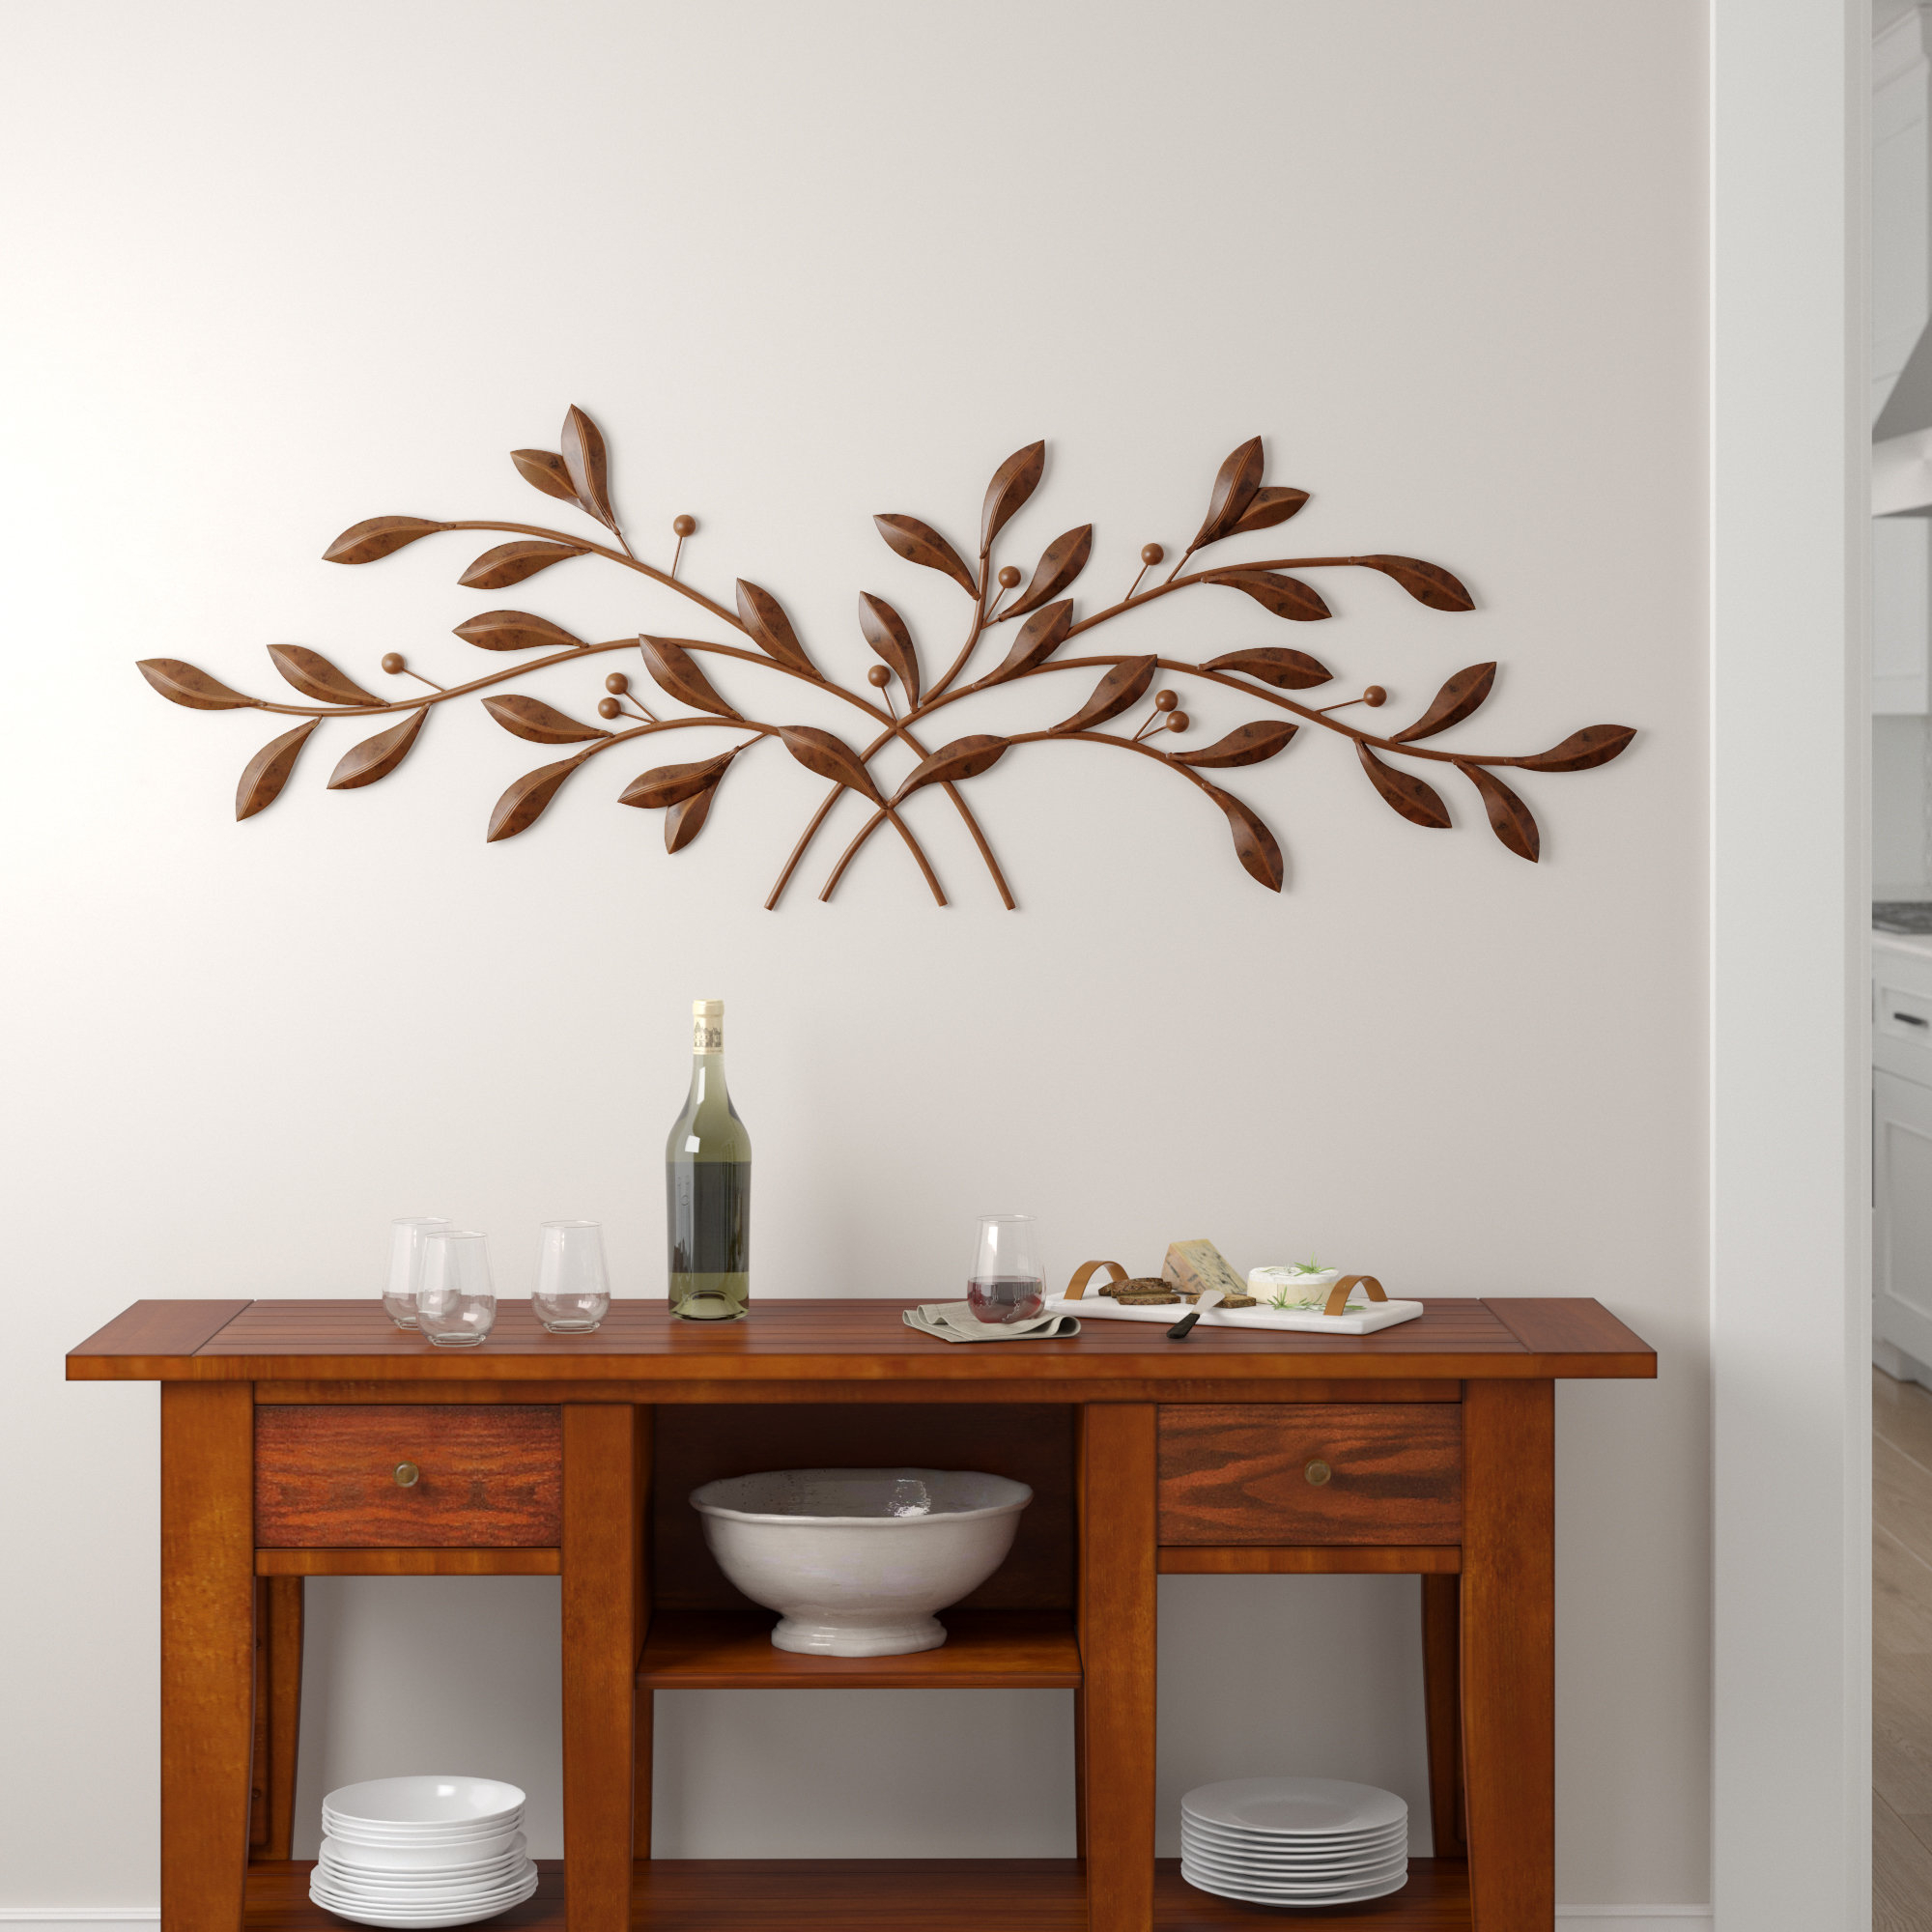 Raheem Flowers Metal Wall Decor By Alcott Hill With Famous Red Barrel Studio Metal Leaf With Berries Wall Décor & Reviews (Gallery 17 of 20)